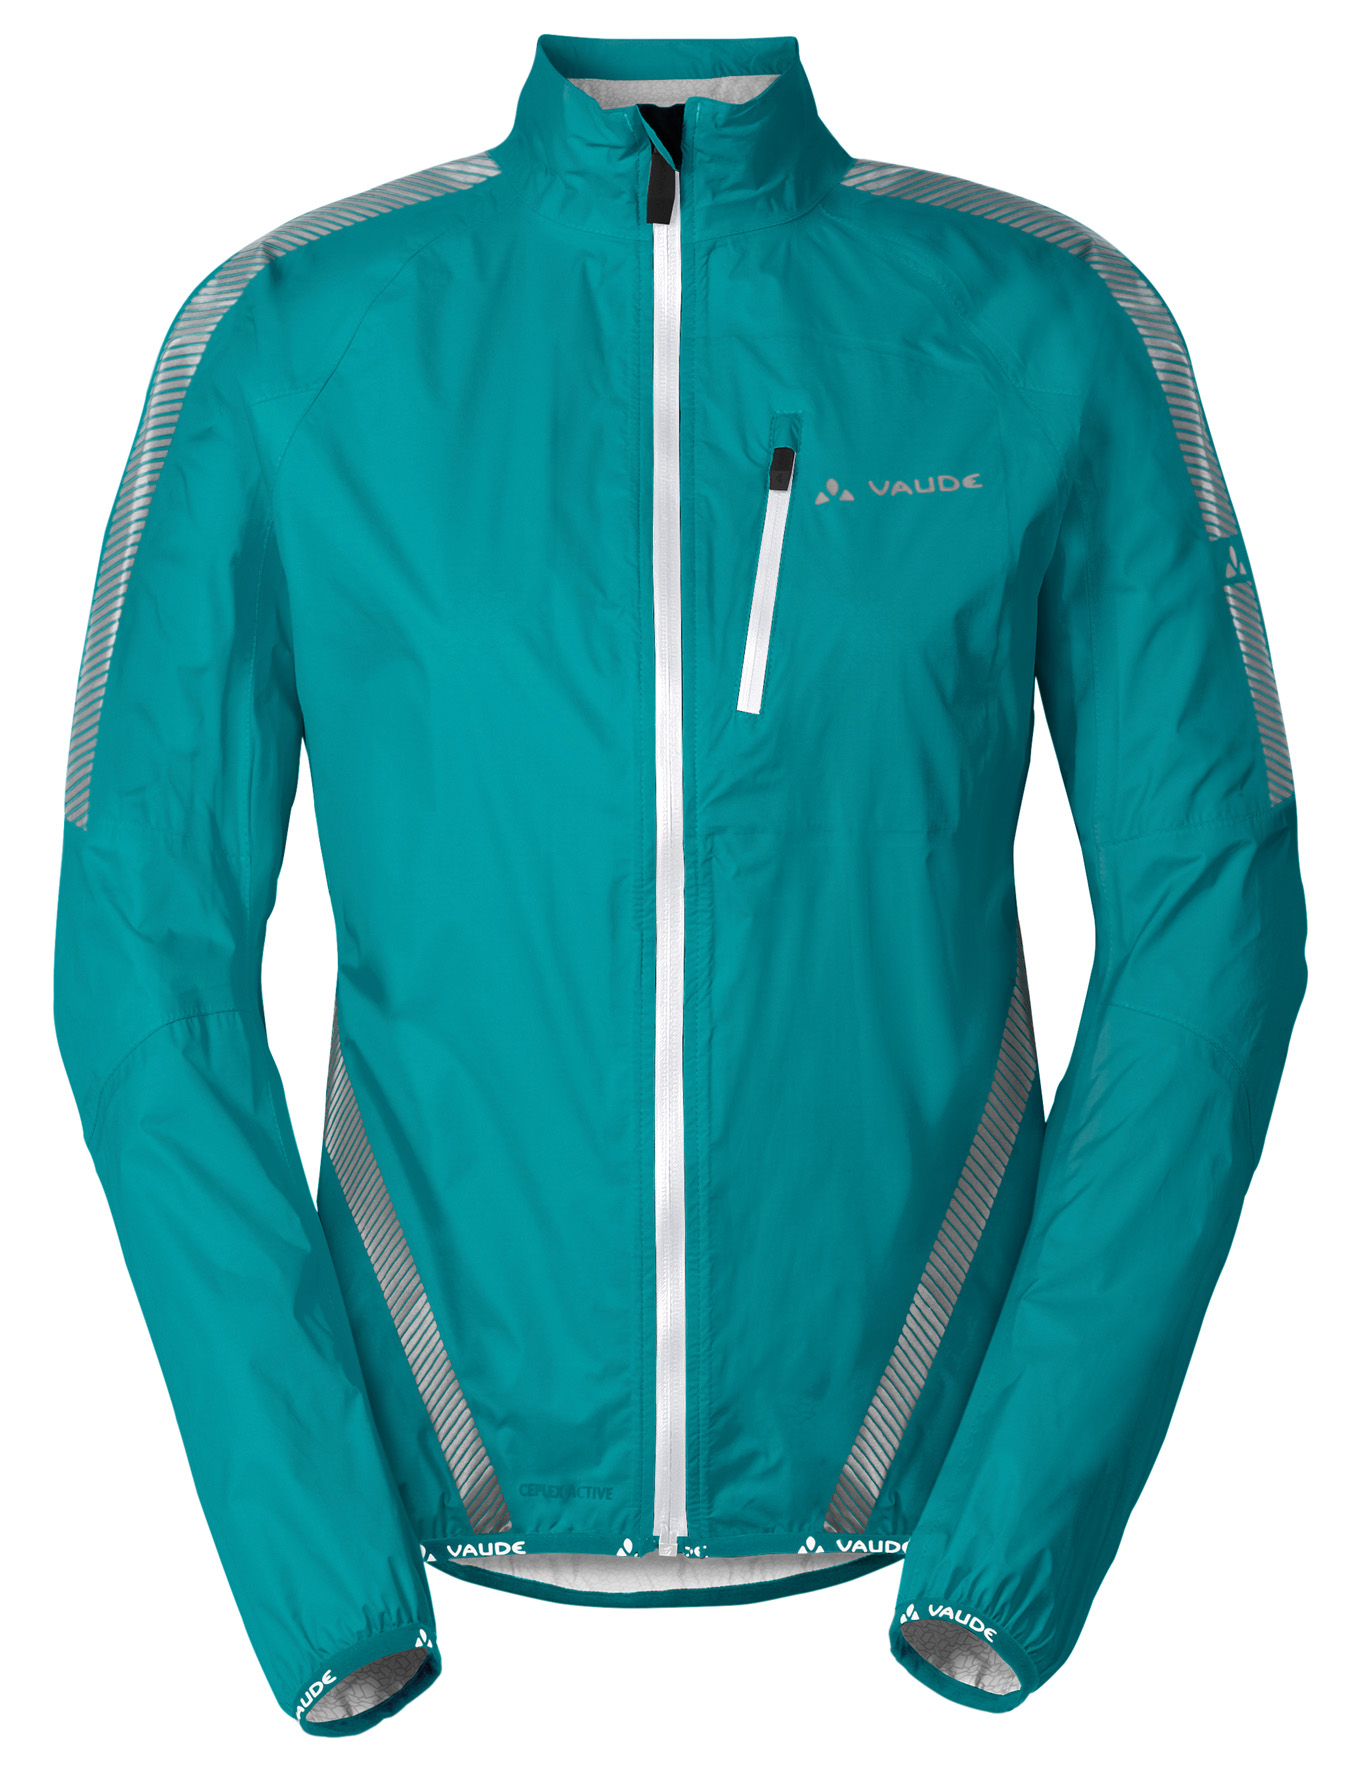 VAUDE Women´s Luminum Performance Jacket reef Größe 44 - VAUDE Women´s Luminum Performance Jacket reef Größe 44